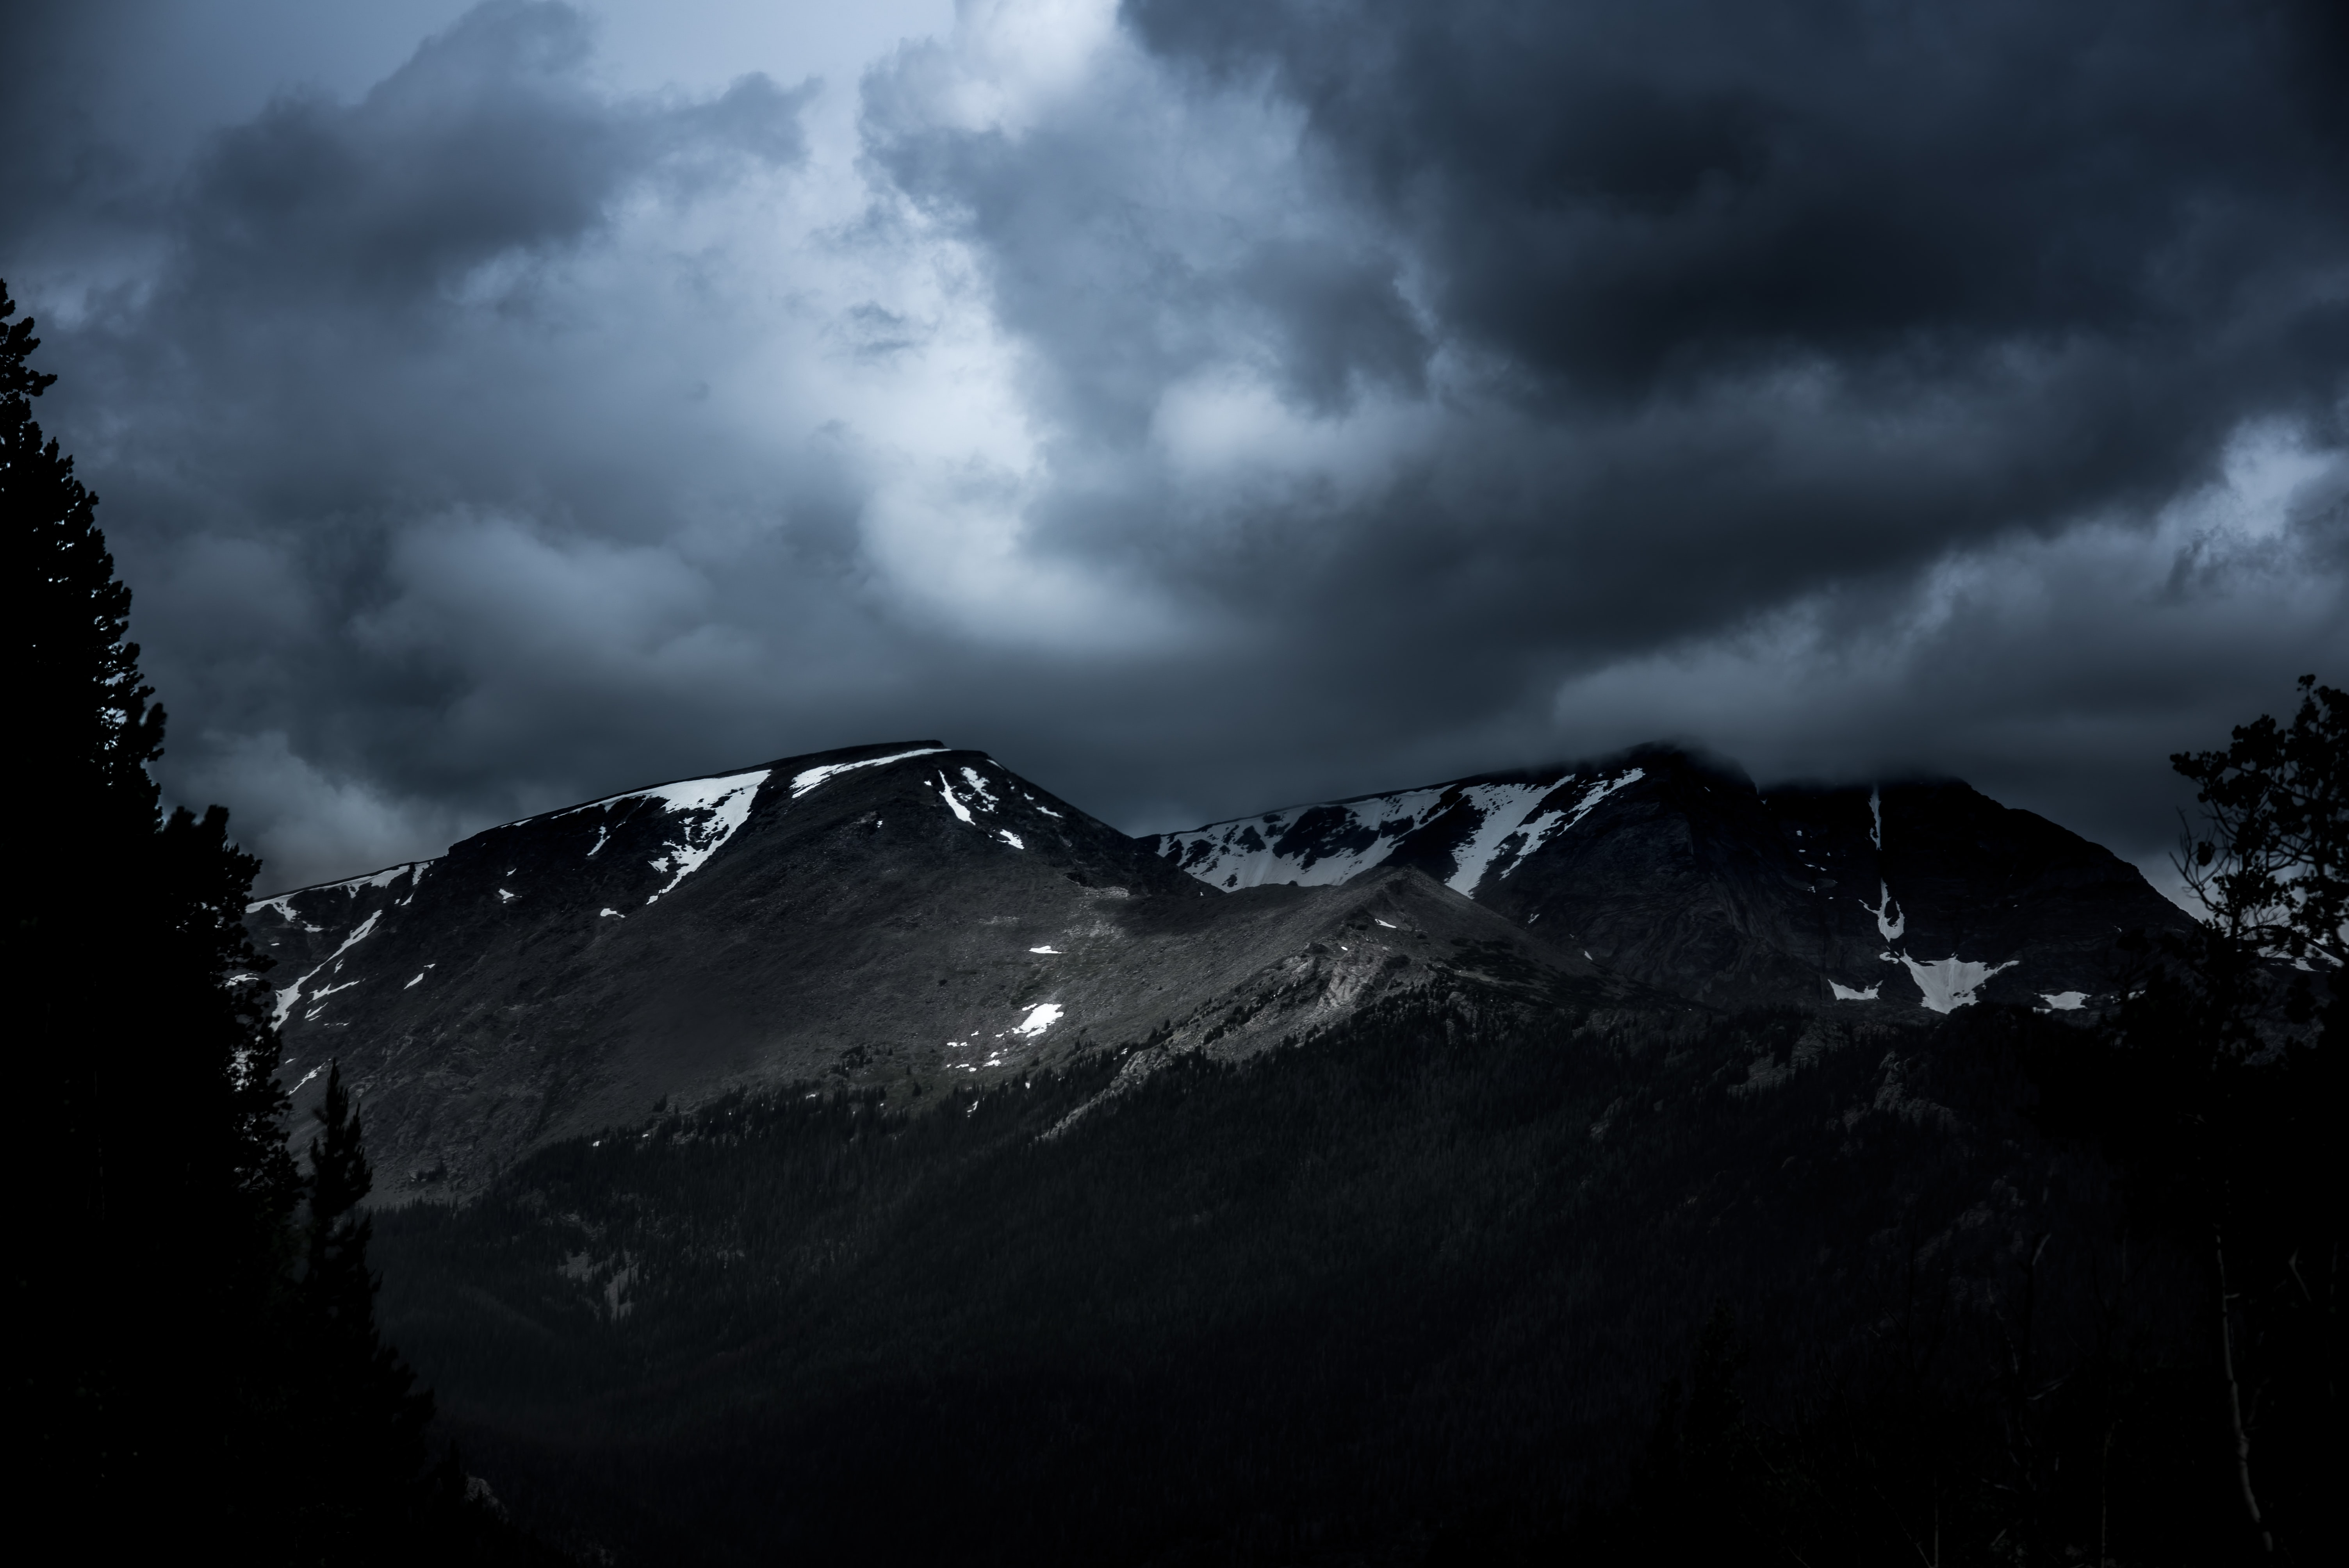 A dark cloudy overcast on snow covered mountain tops.